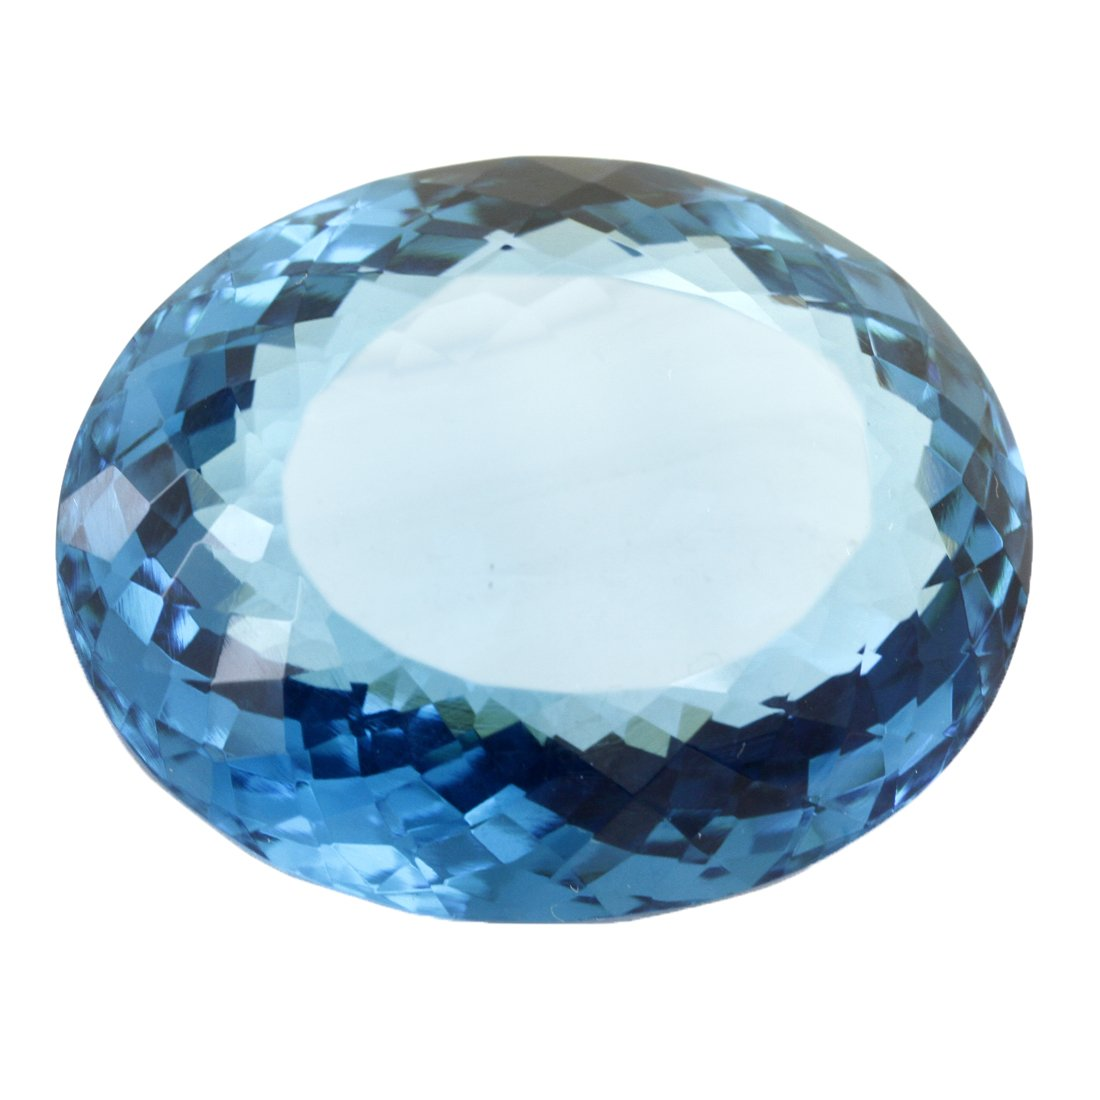 Skyjewels Certified 134.80 Cts. Blue Topaz Gemstone AAA Quality